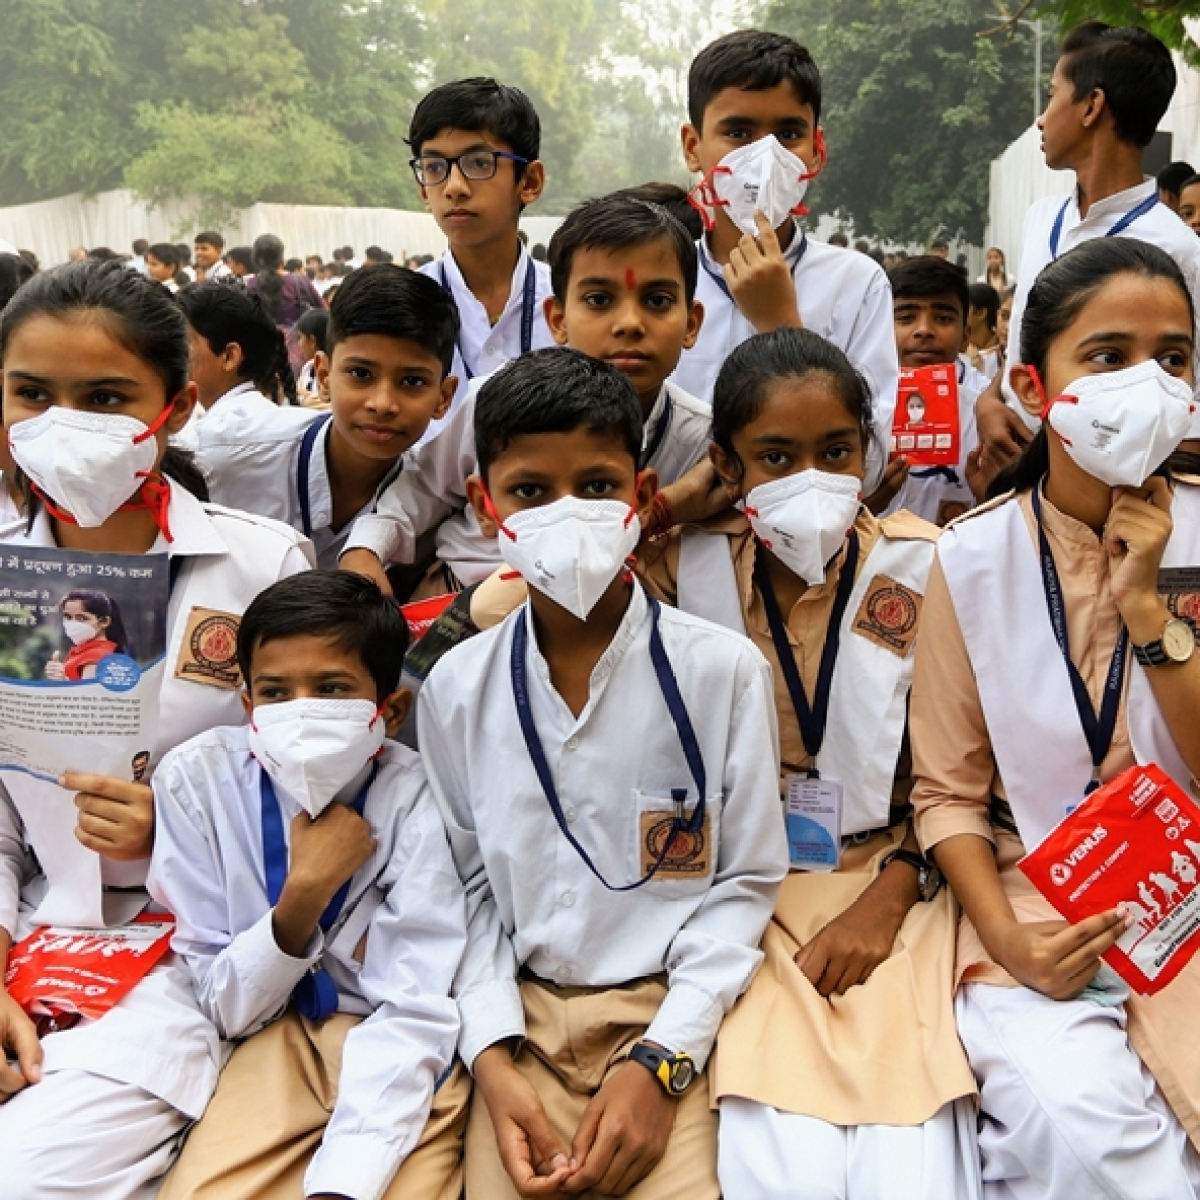 Air pollution: Arvind Kejriwal wants school children to write letters to 'Capt uncle, Khattar uncle'